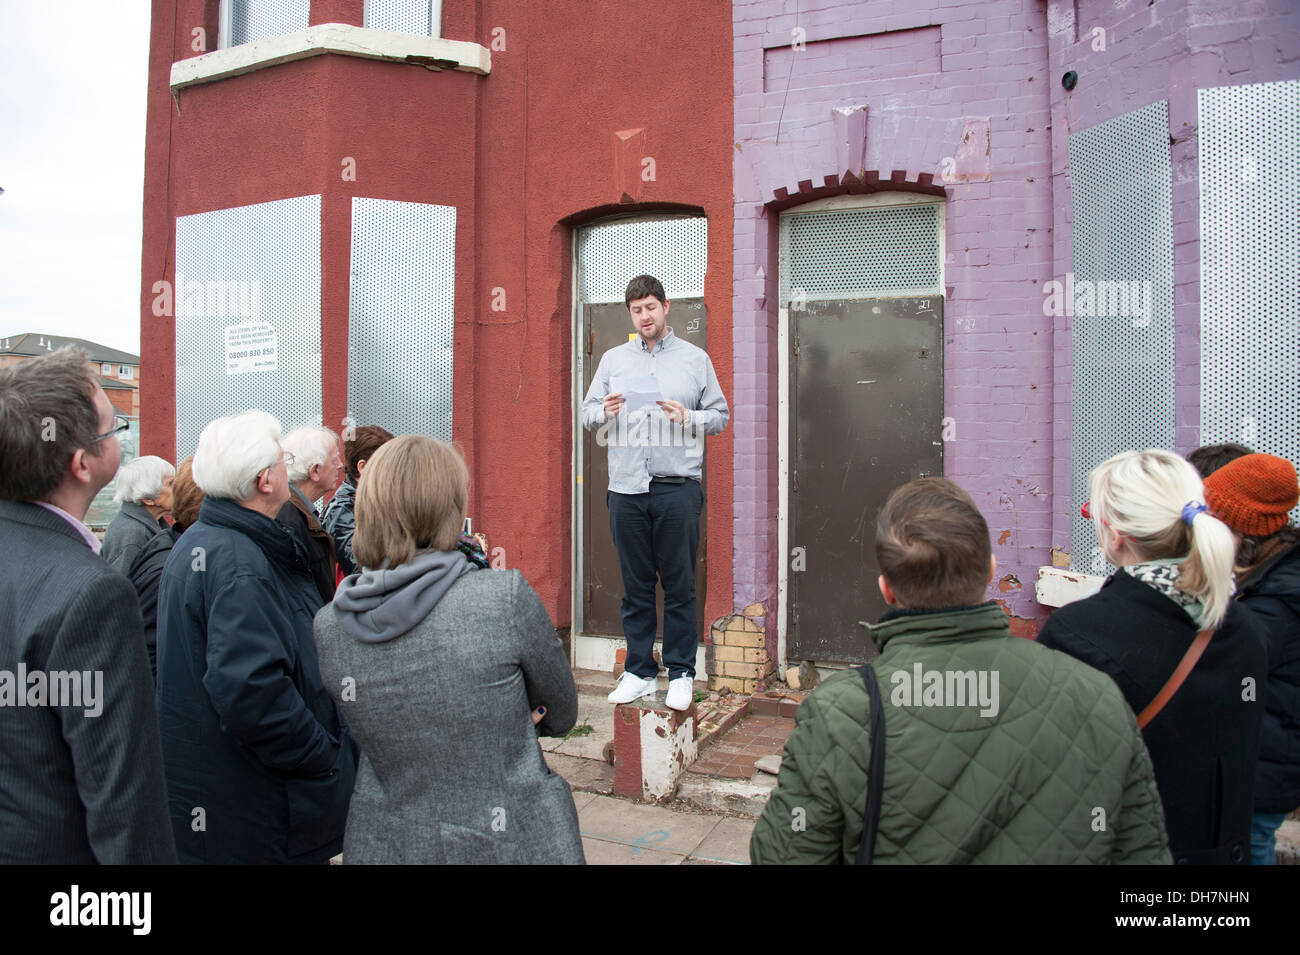 Public Speaker talking to onlookers at derelict house - Stock Image